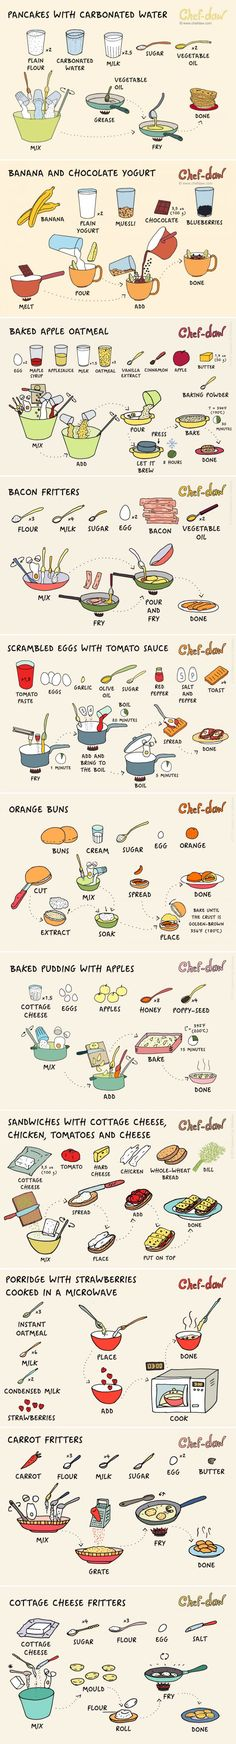 11 simple and yummy breakfast ideas (by chefdaw)